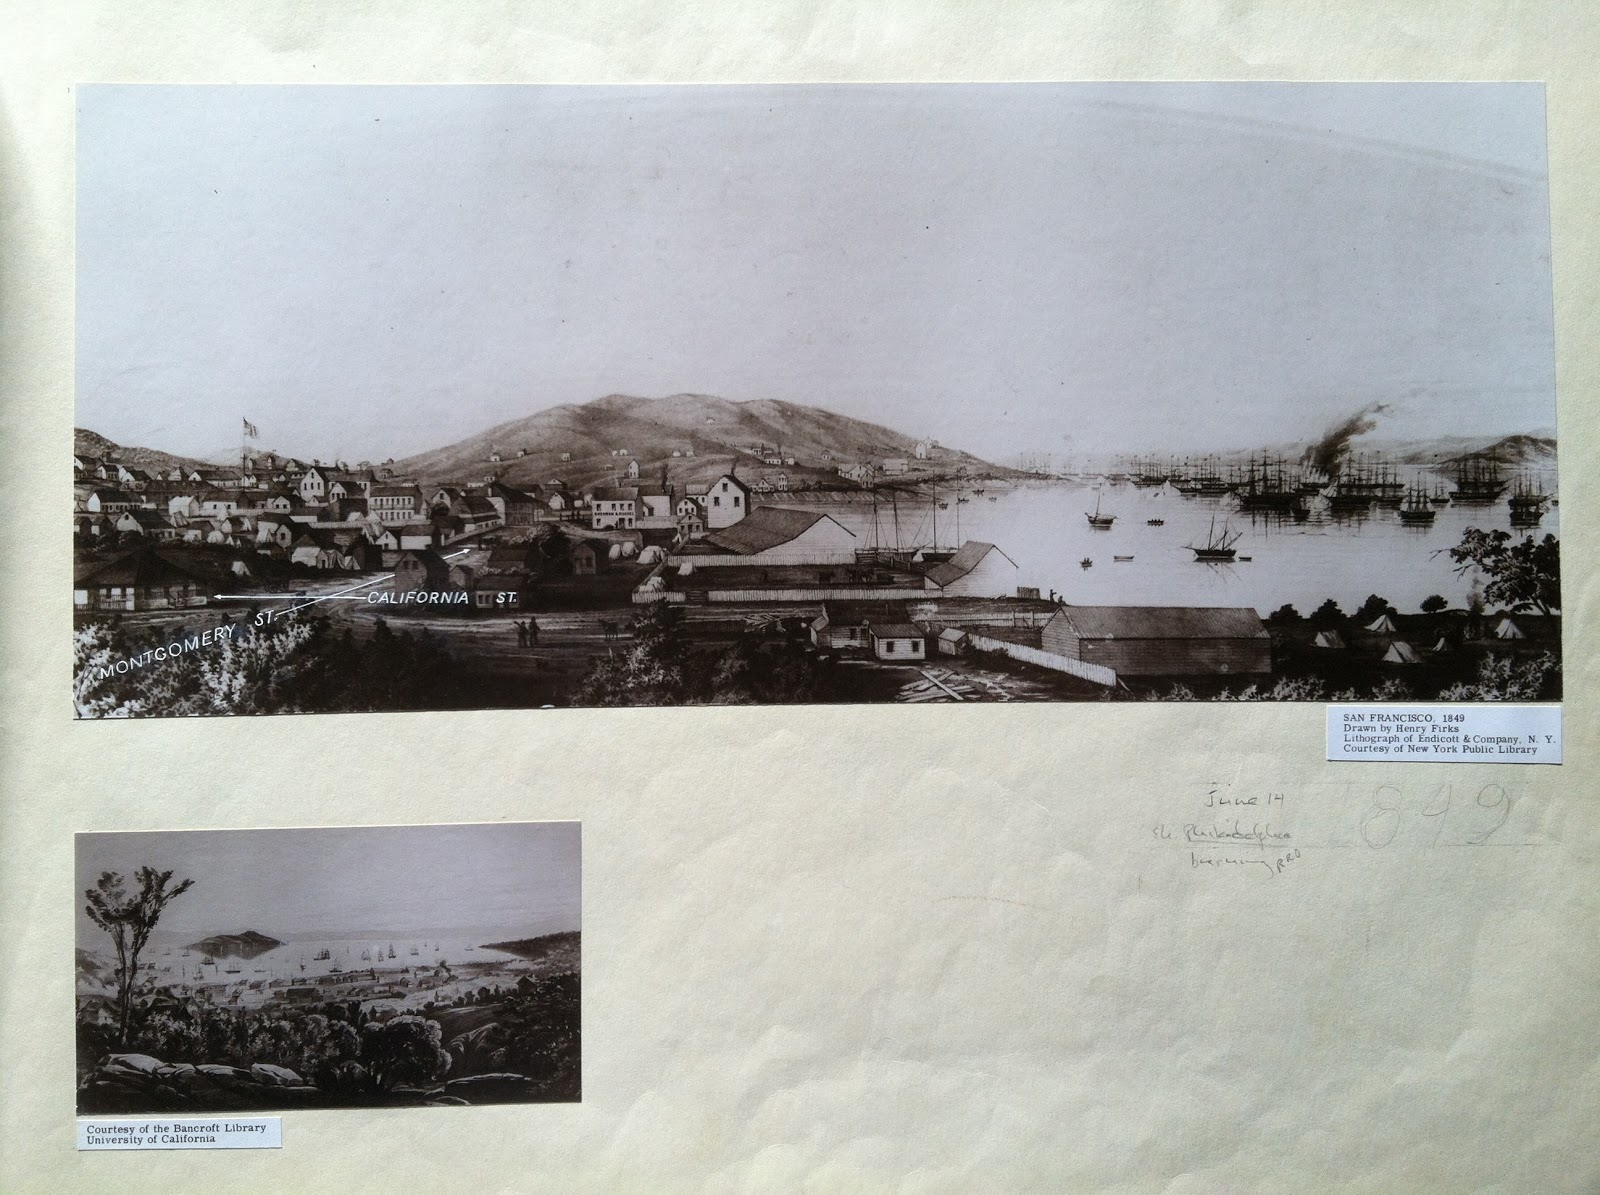 views of early San Francisco